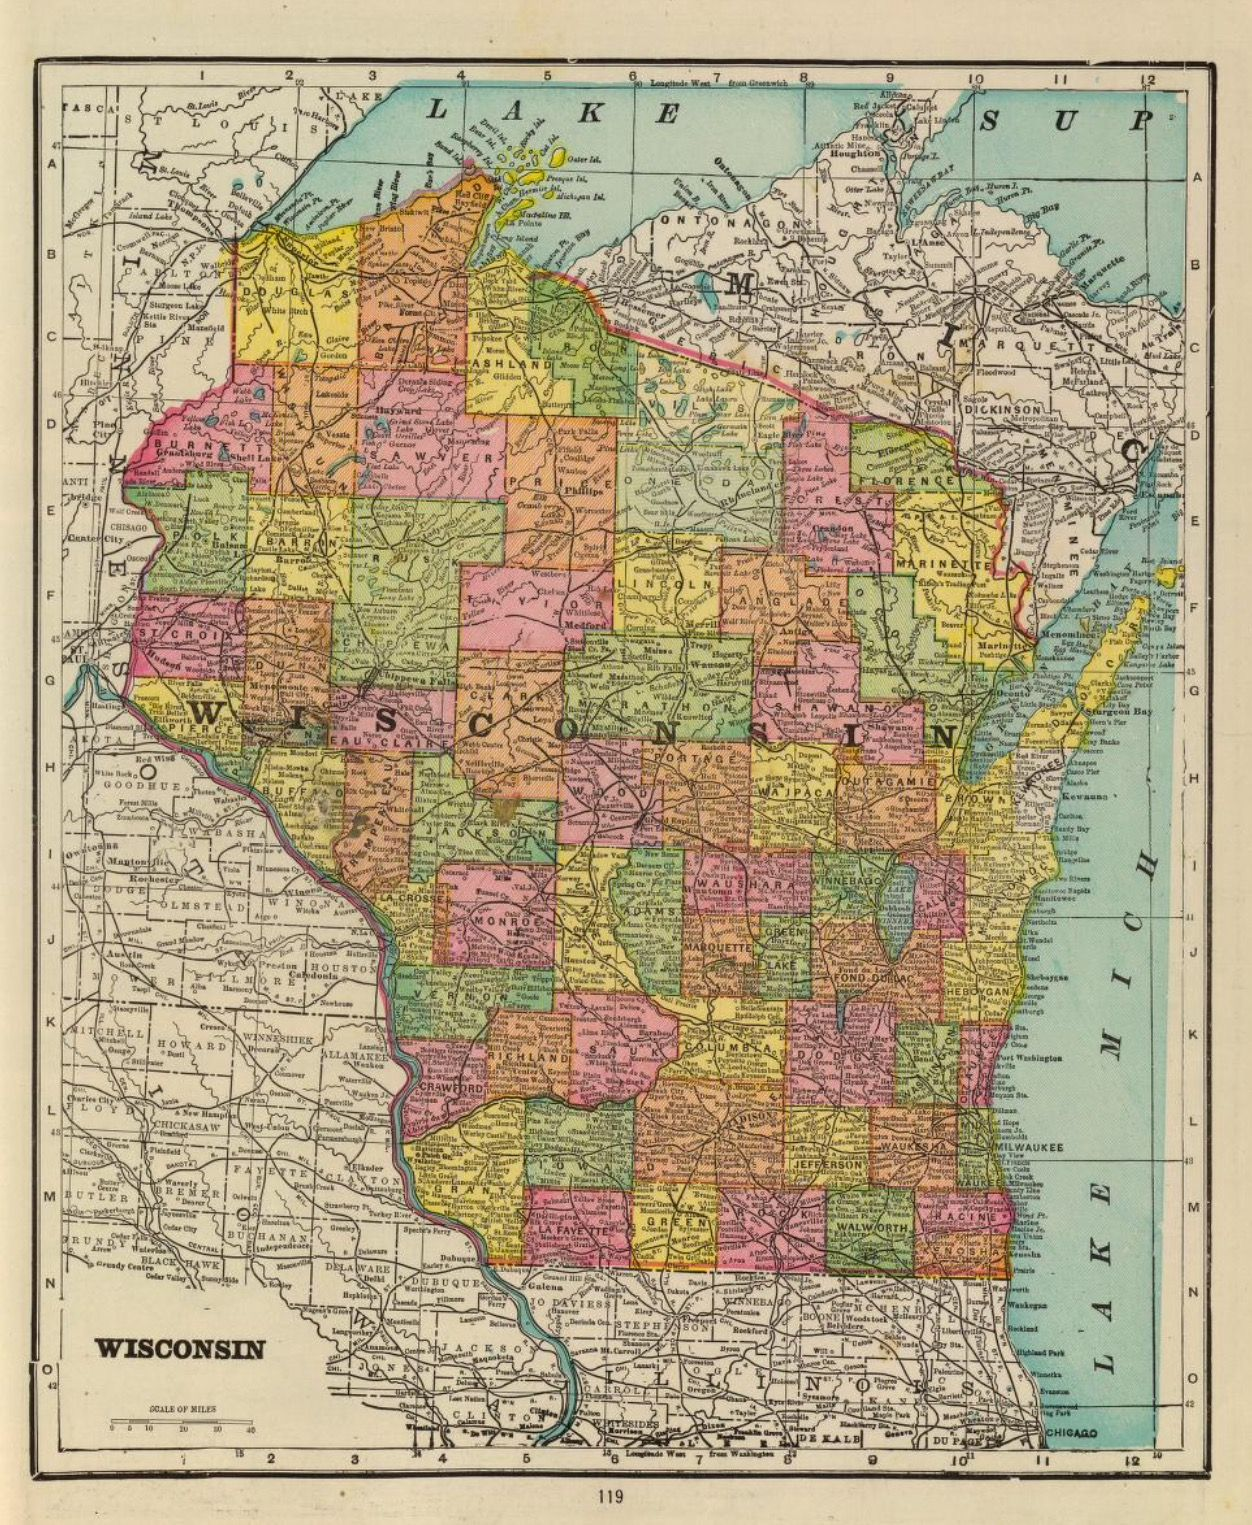 Map Of Wisconsin Published By George F Cram Chicago Ill - Ill map